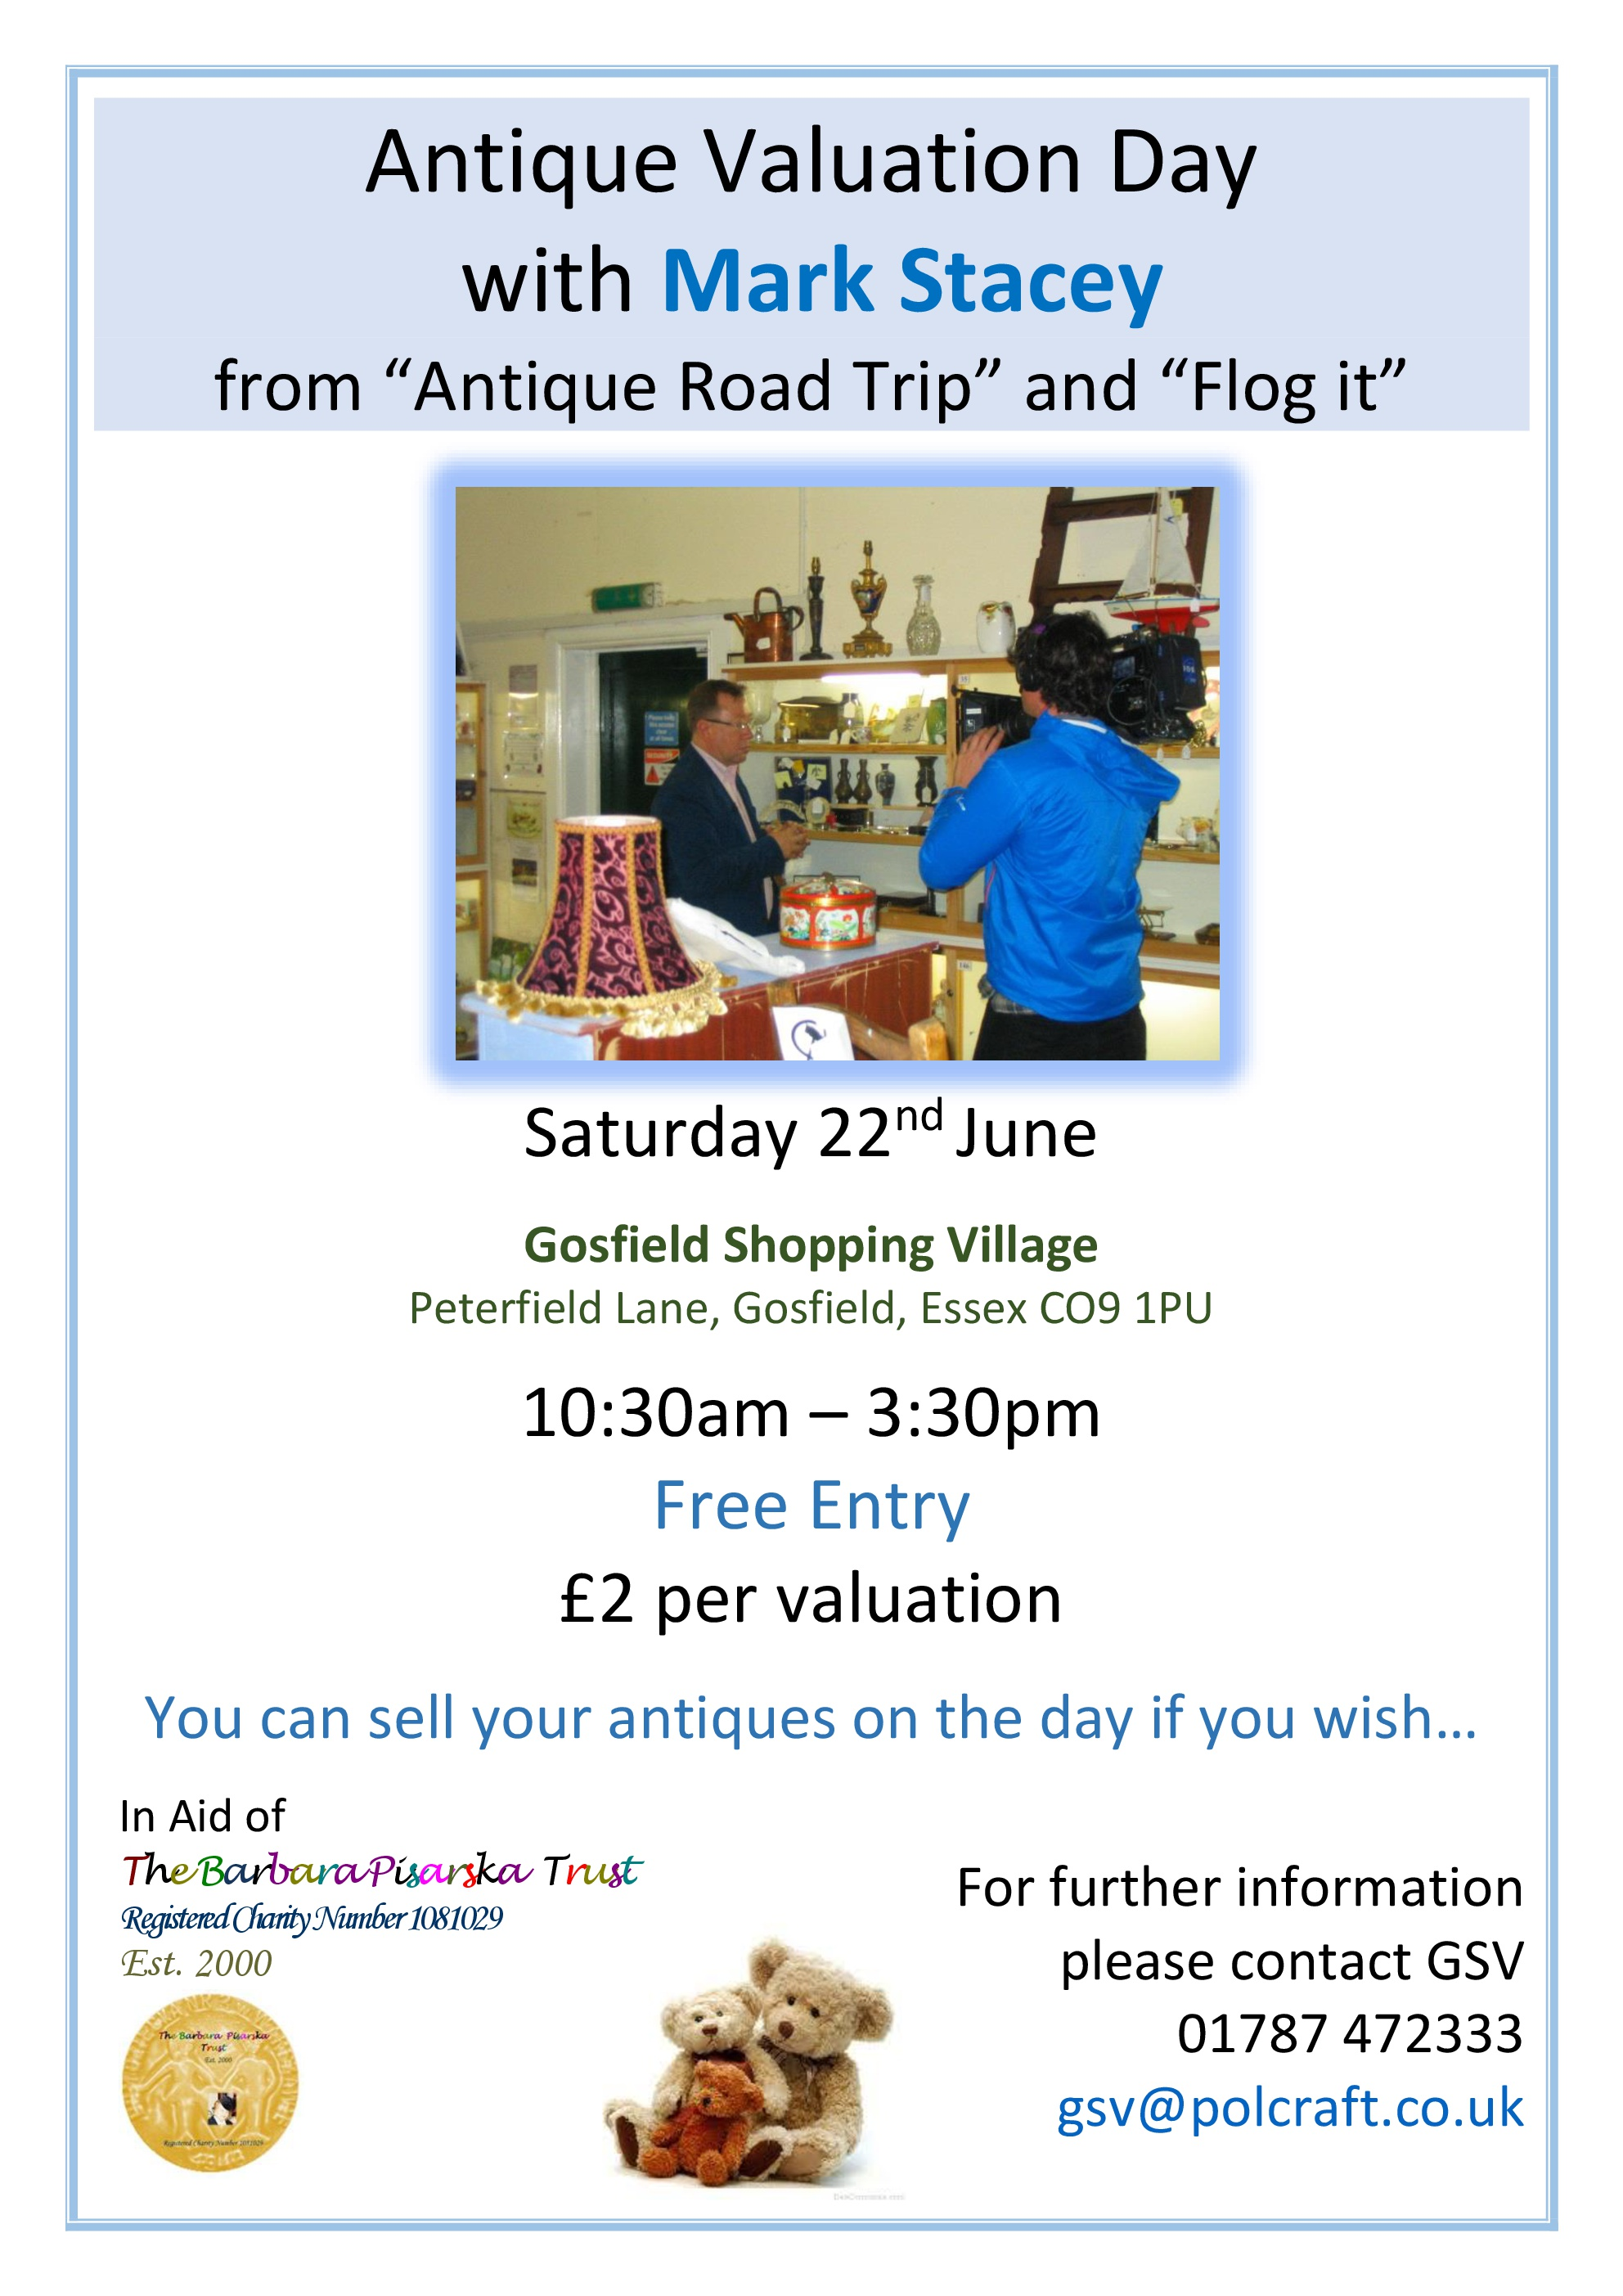 Valuation Day with Mark Stacey